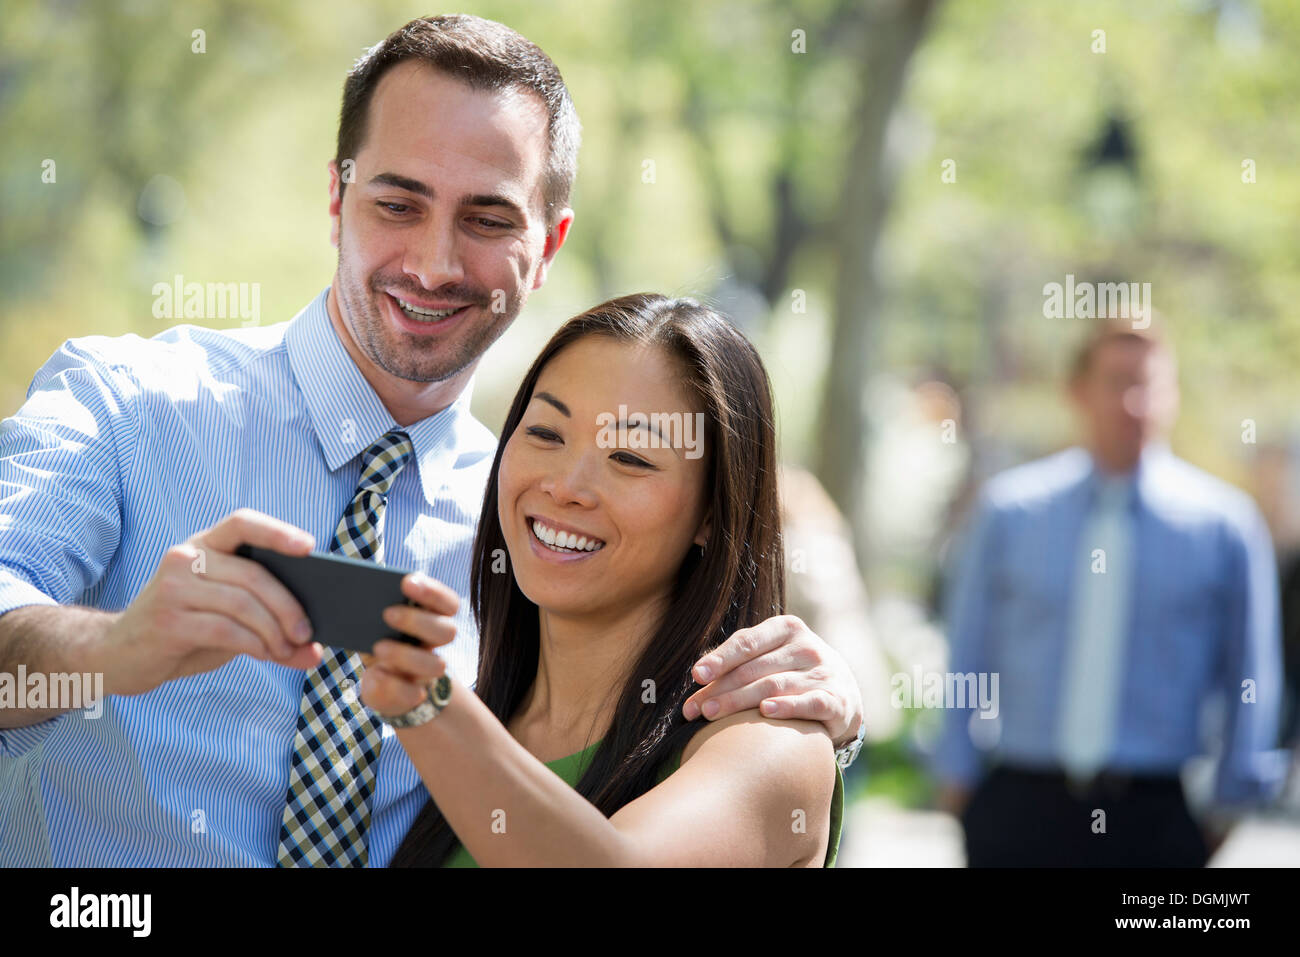 A couple with a smart phone, side by side. A man in the background. - Stock Image